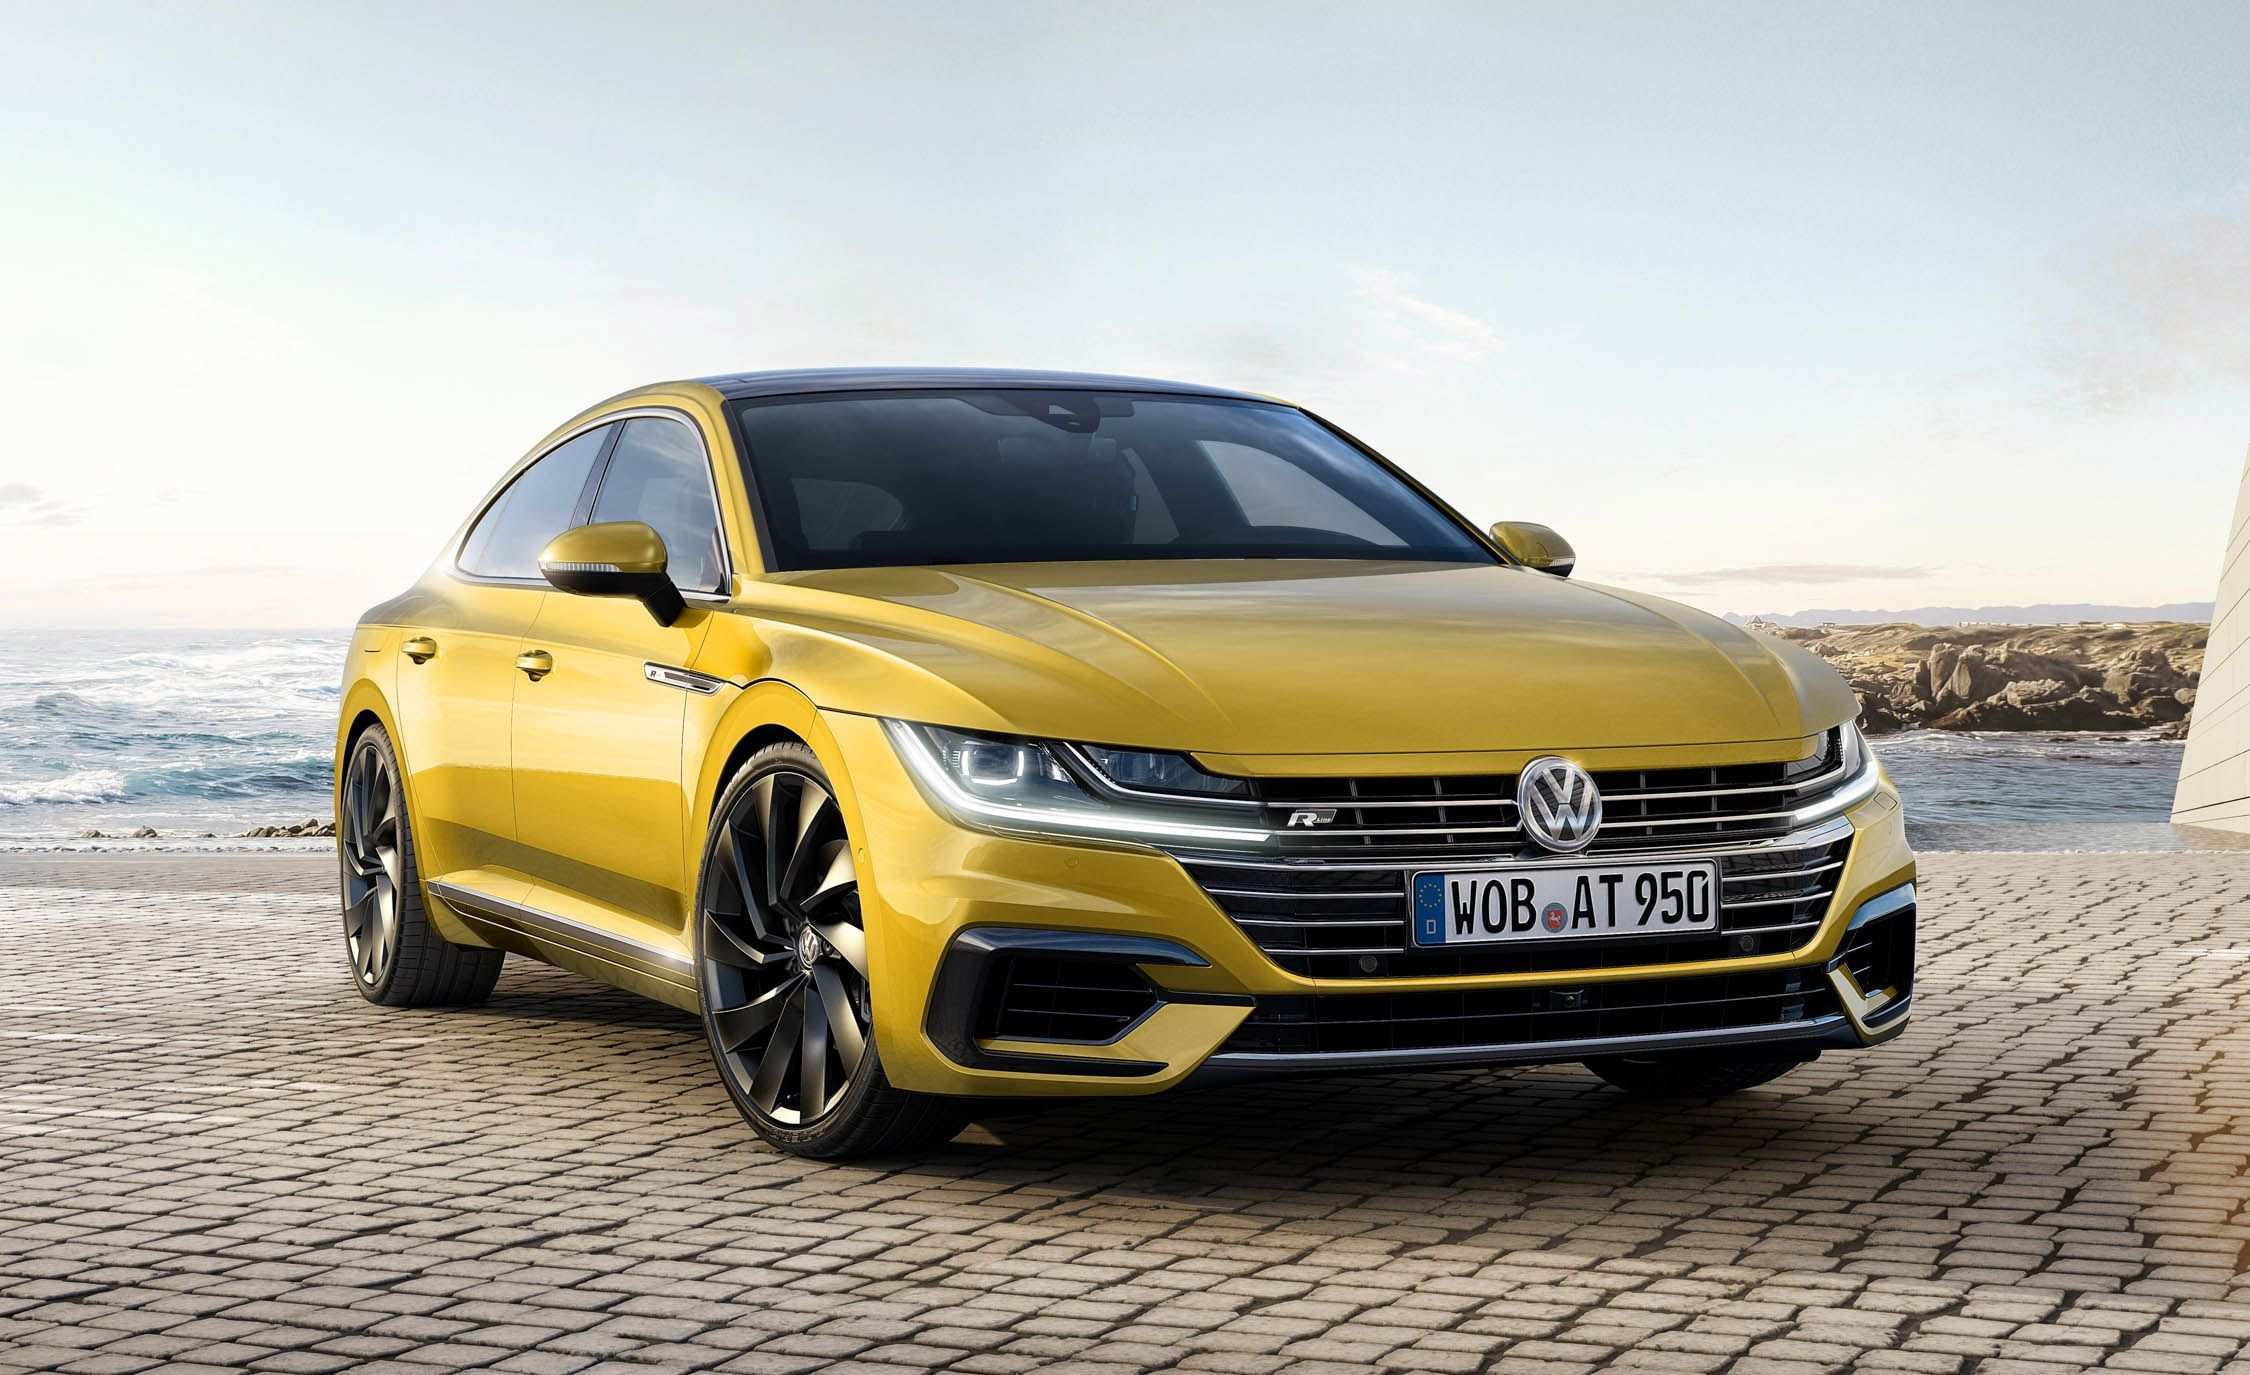 53 The Volkswagen Arteon 2020 Exterior First Drive with Volkswagen Arteon 2020 Exterior